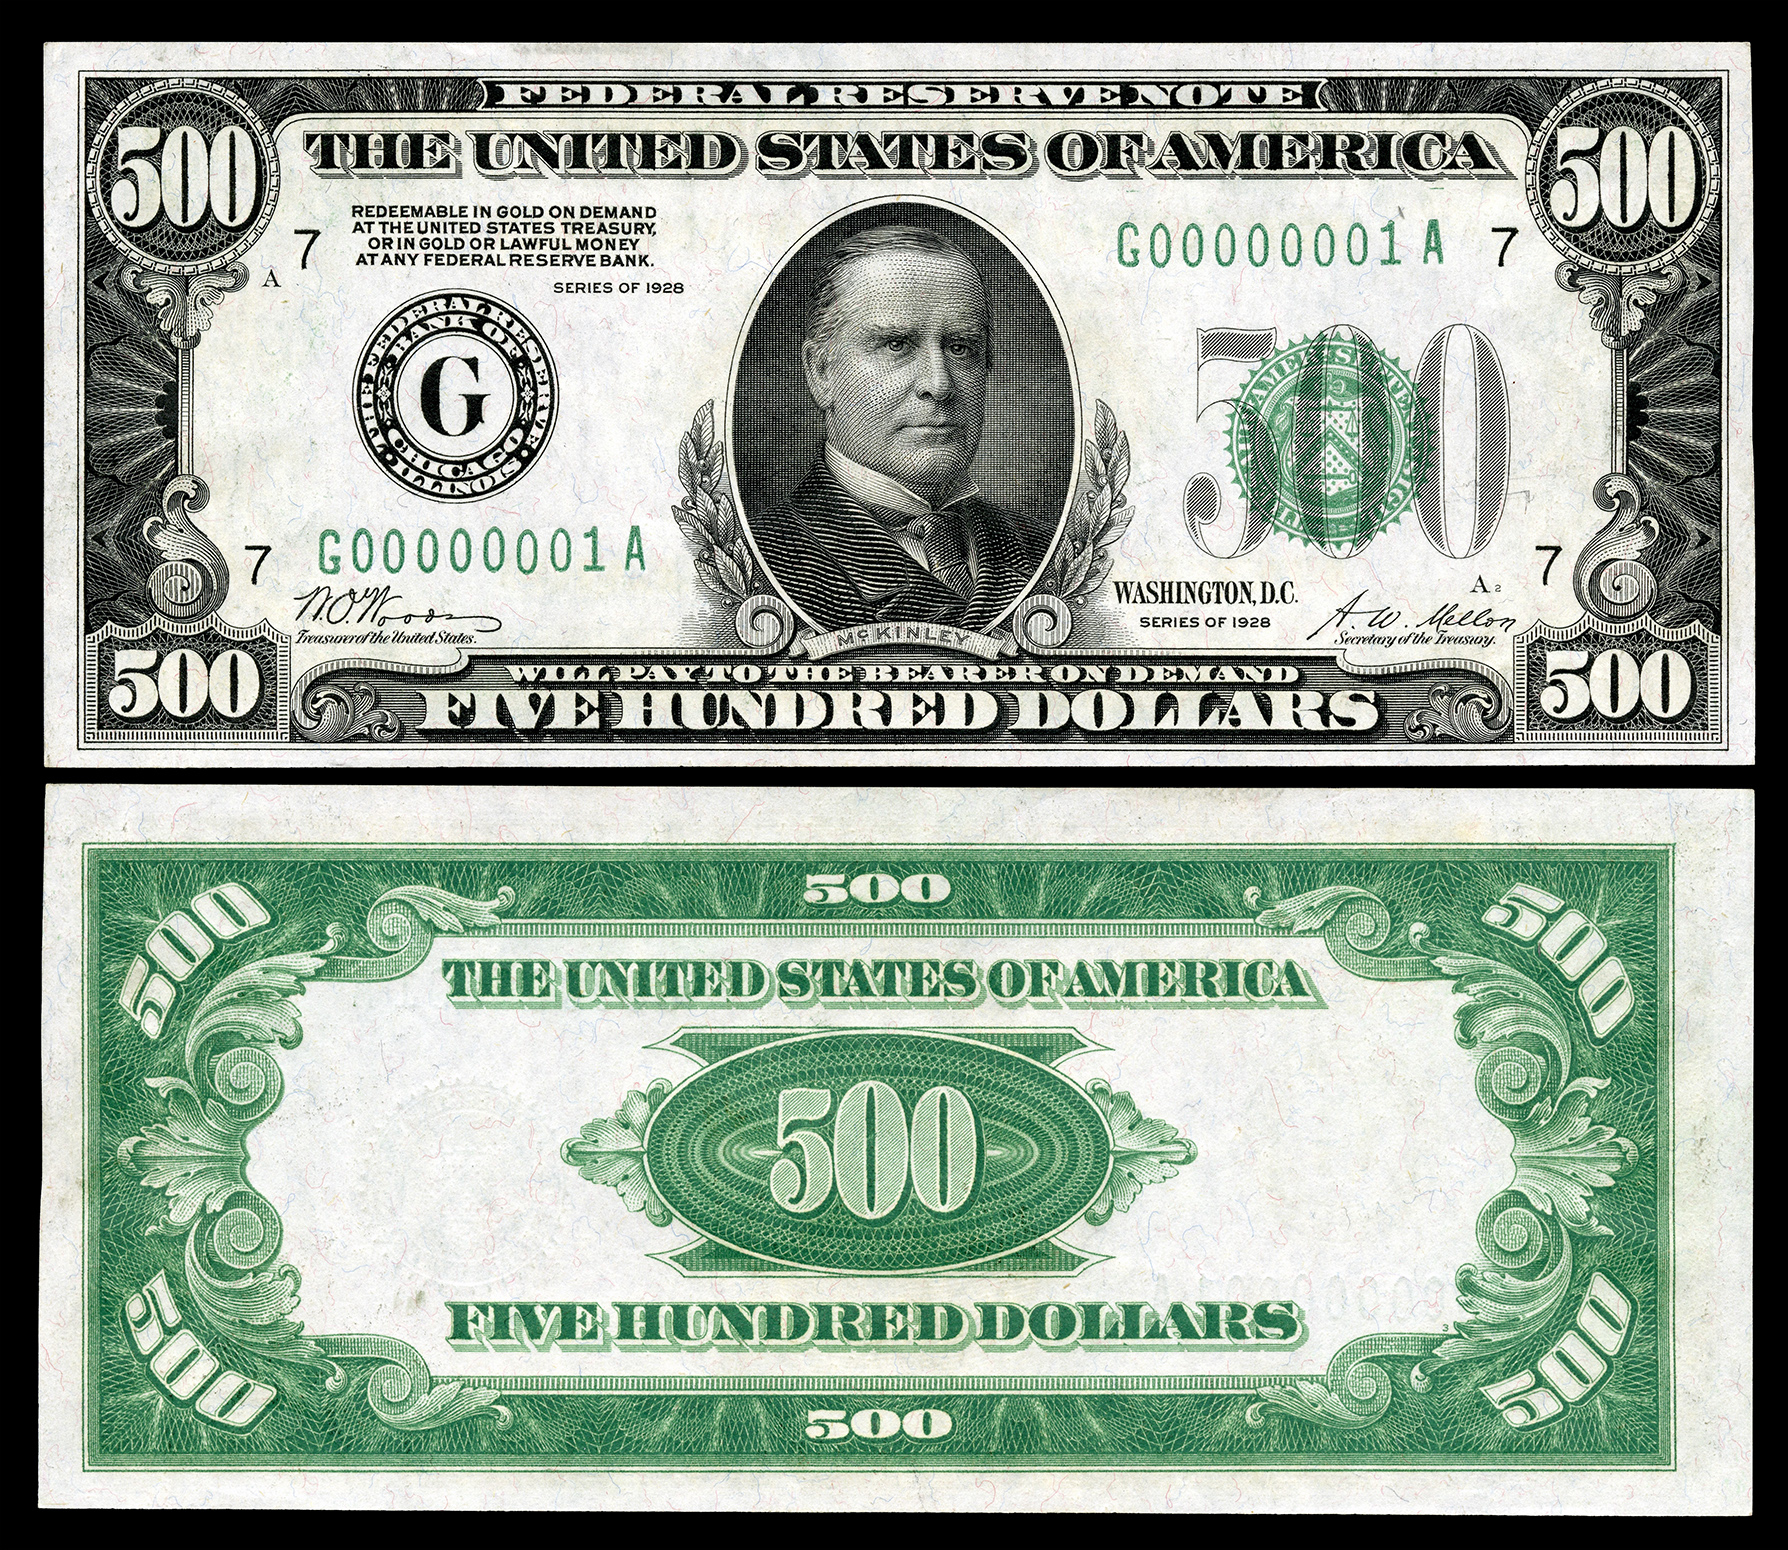 worksheet 200 Dollar Bill large denominations of united states currency wikipedia 500 federal reserve note series 1928 fr 2200g depicting william mckinley